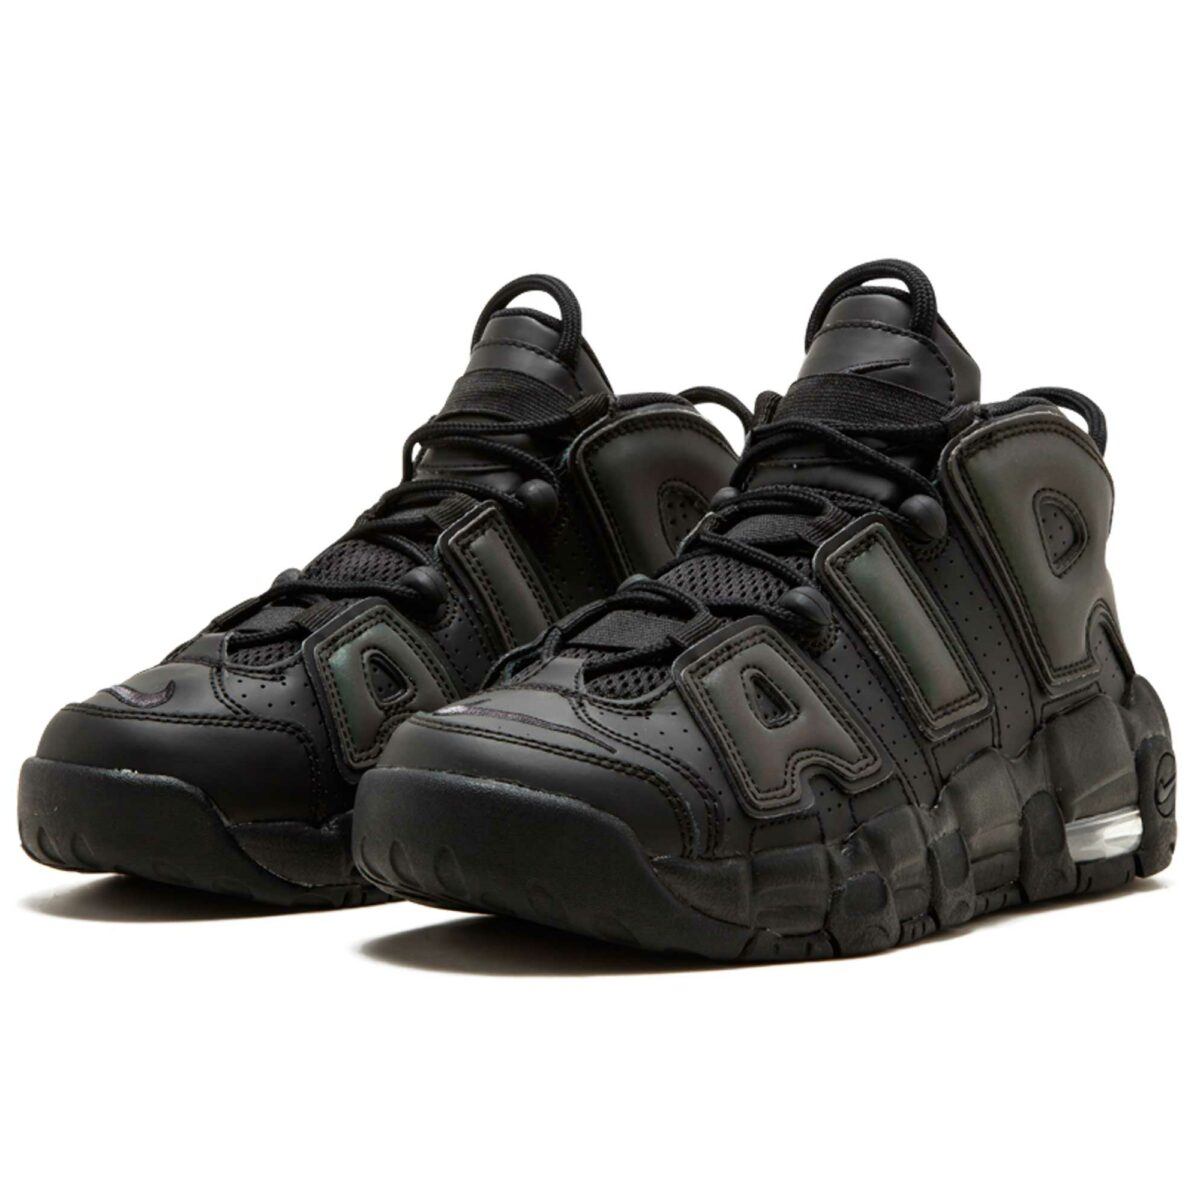 nike air more uptempo black glowing SE (GS) 922845_001 купить